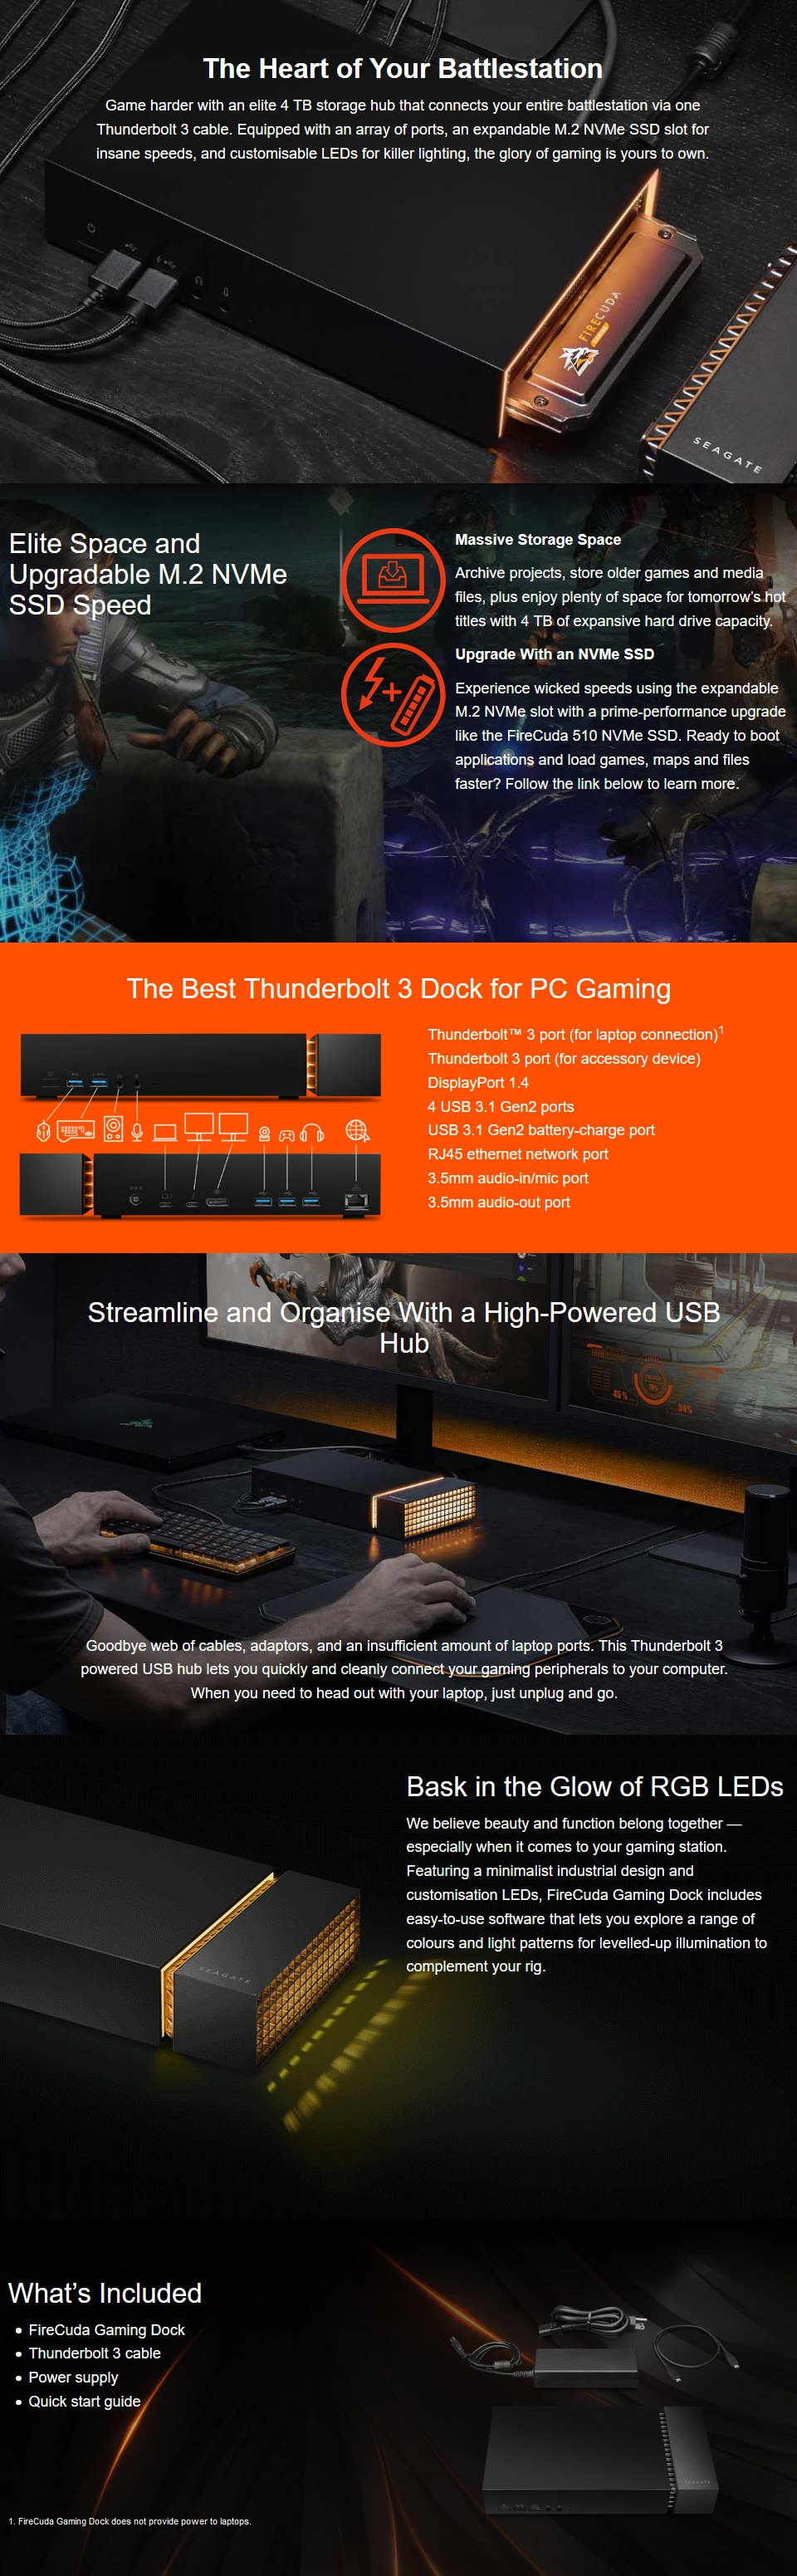 Seagate Firecudda Gaming Dock features